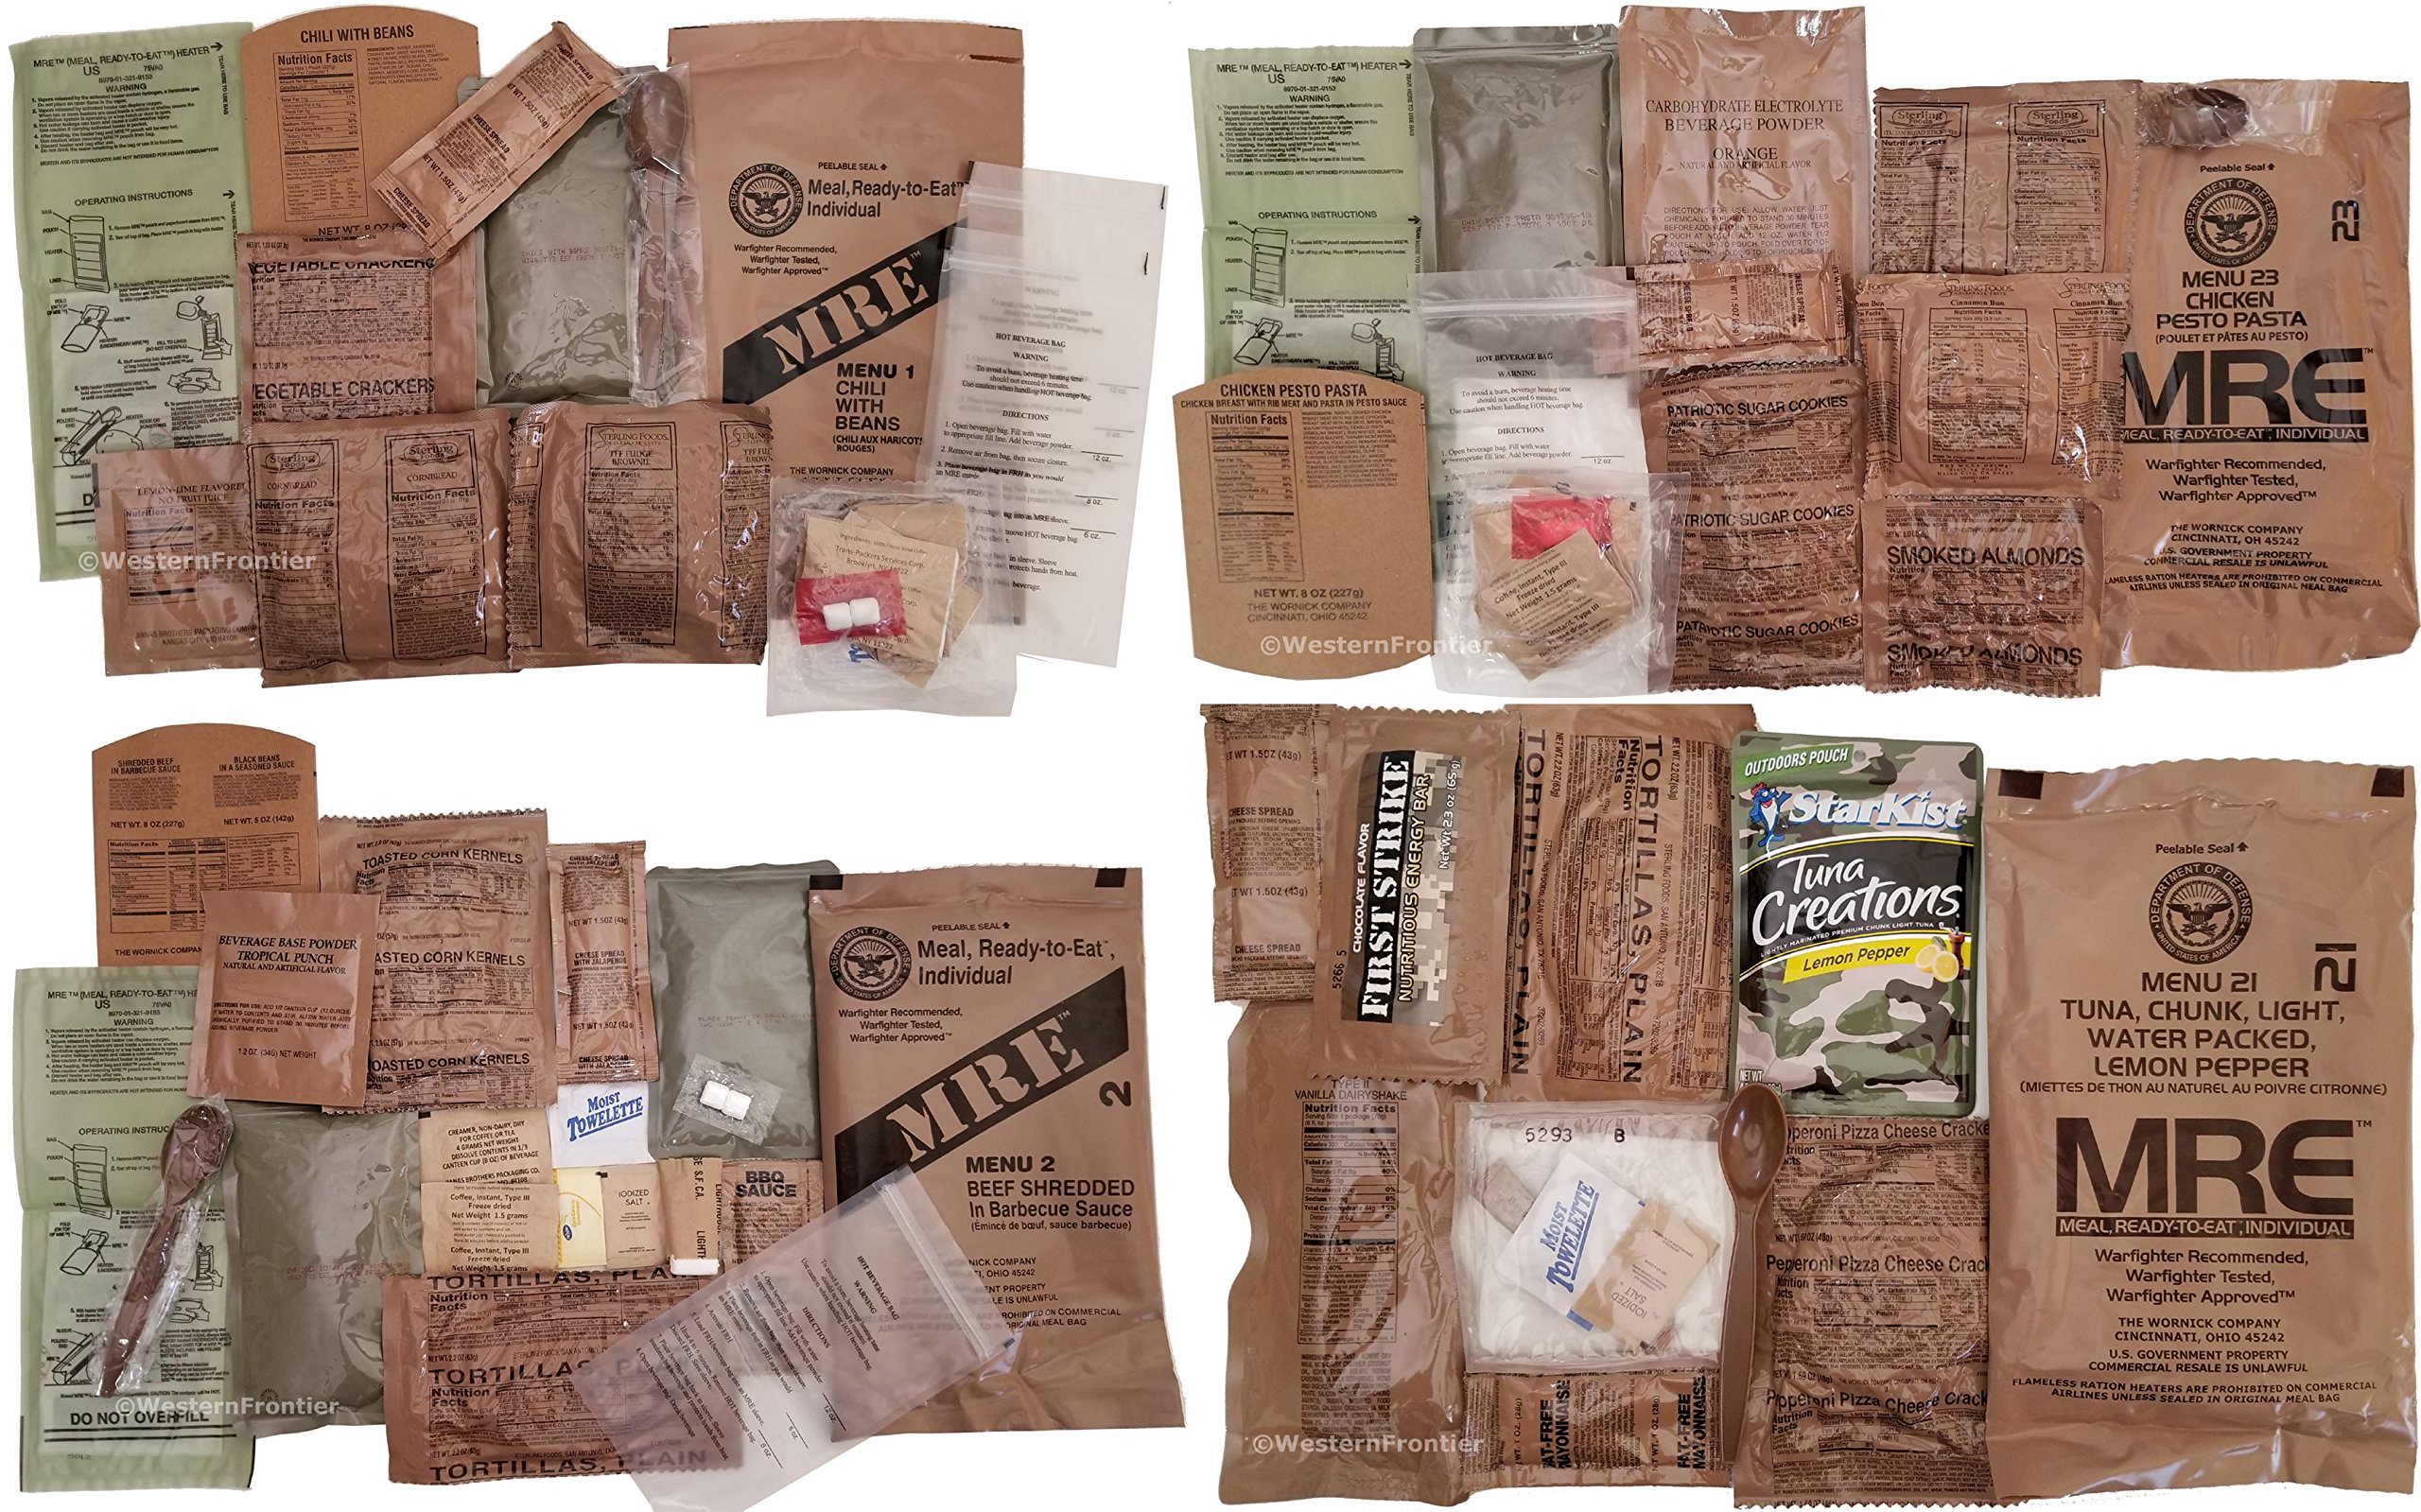 Western Frontier MRE B-Menu Case, 2018 Inspection Date Military Meal-Ready-to-Eat. Case of 12 Genuine US Military Surplus MREs with B-Case Menu Selections. by Western Frontier